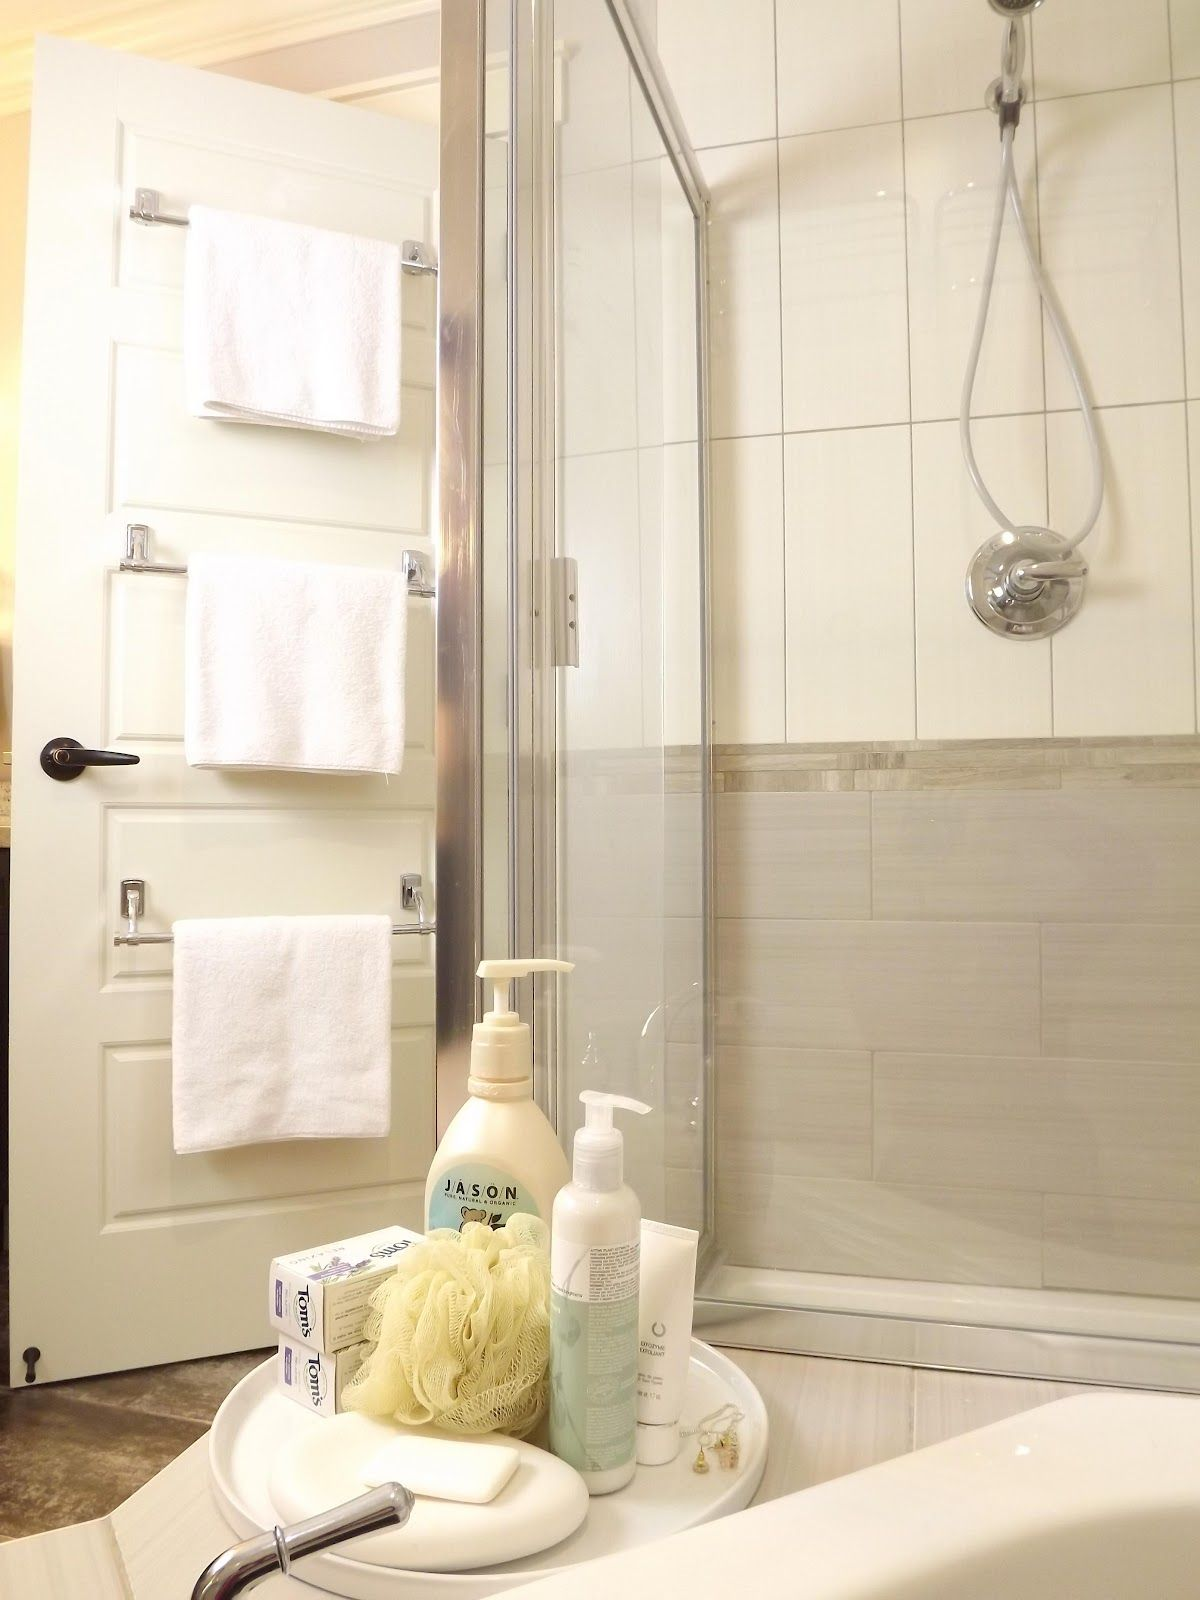 Attach Multiple Towel Bars To The Back Of The Bathroom Door For - Bath towel sets for small bathroom ideas